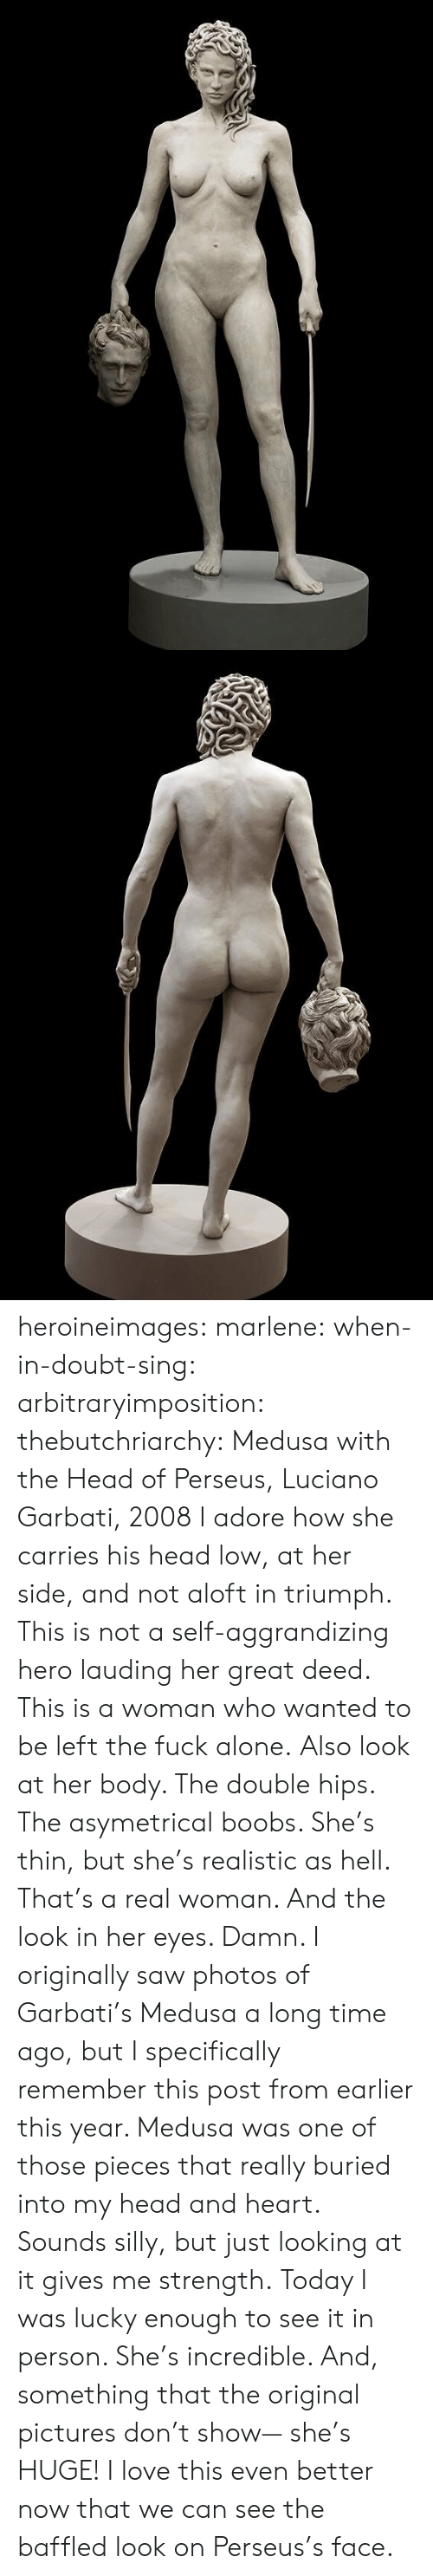 A Real Woman: heroineimages:  marlene:  when-in-doubt-sing:  arbitraryimposition:  thebutchriarchy: Medusa with the Head of Perseus, Luciano Garbati, 2008 I adore how she carries his head low, at her side, and not aloft in triumph.  This is not a self-aggrandizing hero lauding her great deed. This is a woman who wanted to be left the fuck alone.   Also look at her body. The double hips. The asymetrical boobs. She's thin, but she's realistic as hell. That's a real woman.  And the look in her eyes. Damn.   I originally saw photos of Garbati's Medusa a long time ago, but I specifically remember this post from earlier this year. Medusa was one of those pieces that really buried into my head and heart. Sounds silly, but just looking at it gives me strength. Today I was lucky enough to see it in person. She's incredible. And, something that the original pictures don't show— she's HUGE!    I love this even better now that we can see the baffled look on Perseus's face.